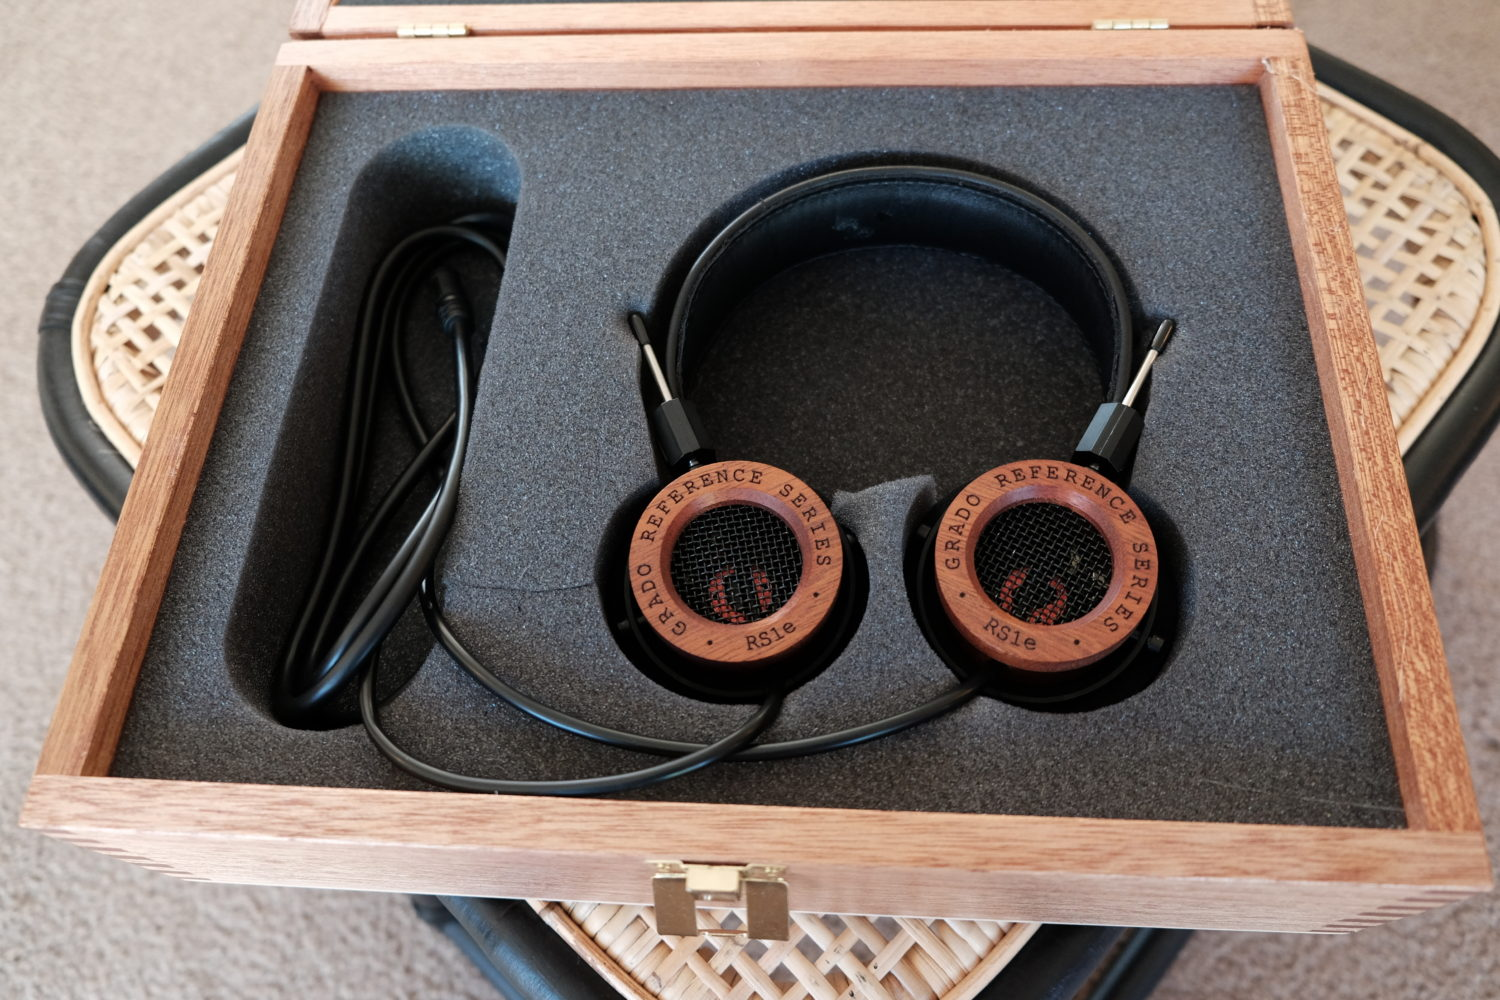 RS1e in Grado Box